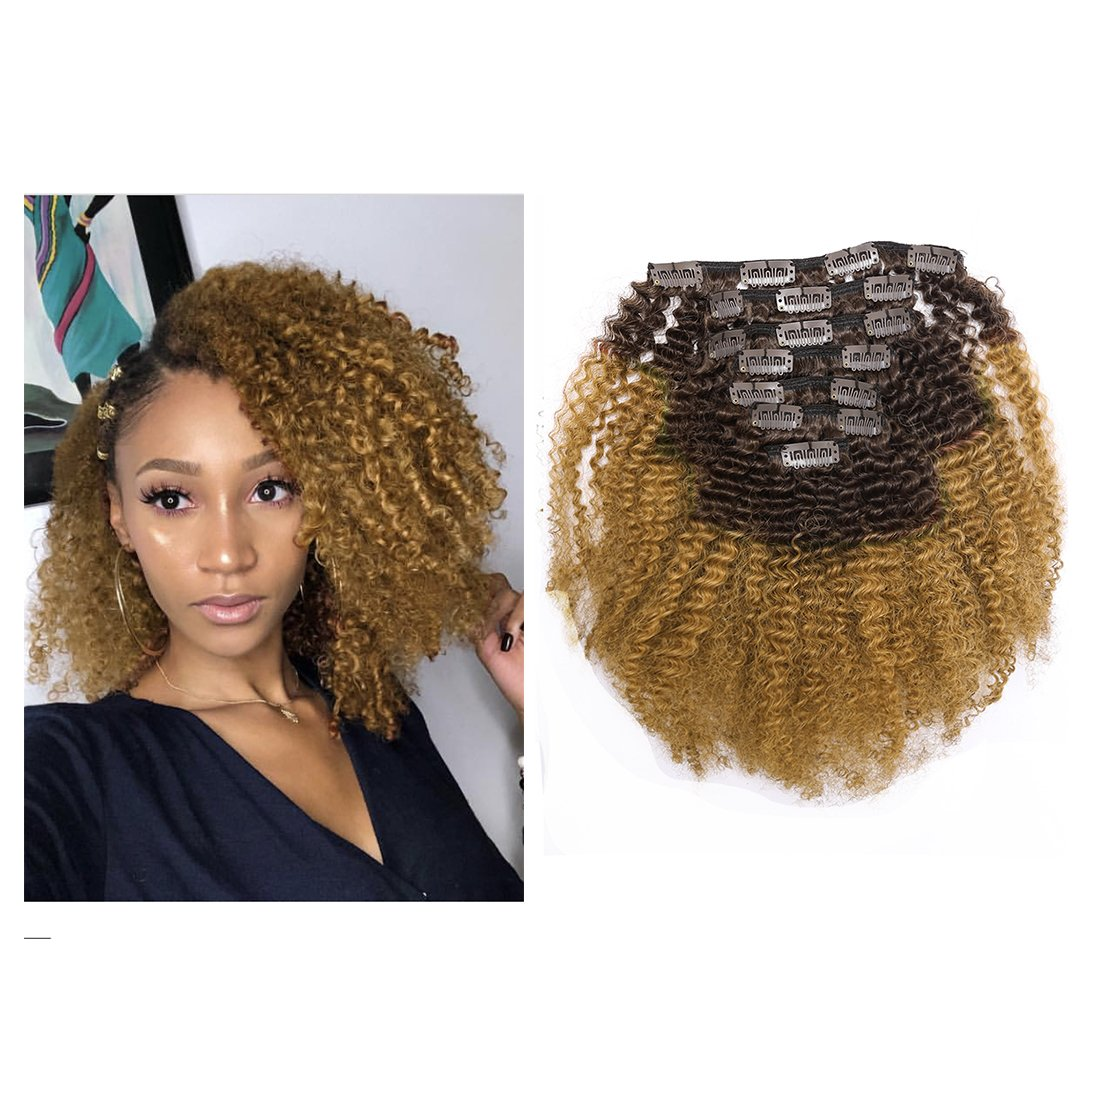 Lacerhair 4A 4B Big Afro Kinky Curly Ombre Hair Extensions Clip in Double Weft Remy Human Hair for Black Women Two Tone Clip in Curly Hair,Dark Brown Fading into Blonde Strawberry #4/27, 16 Inch by Lacer